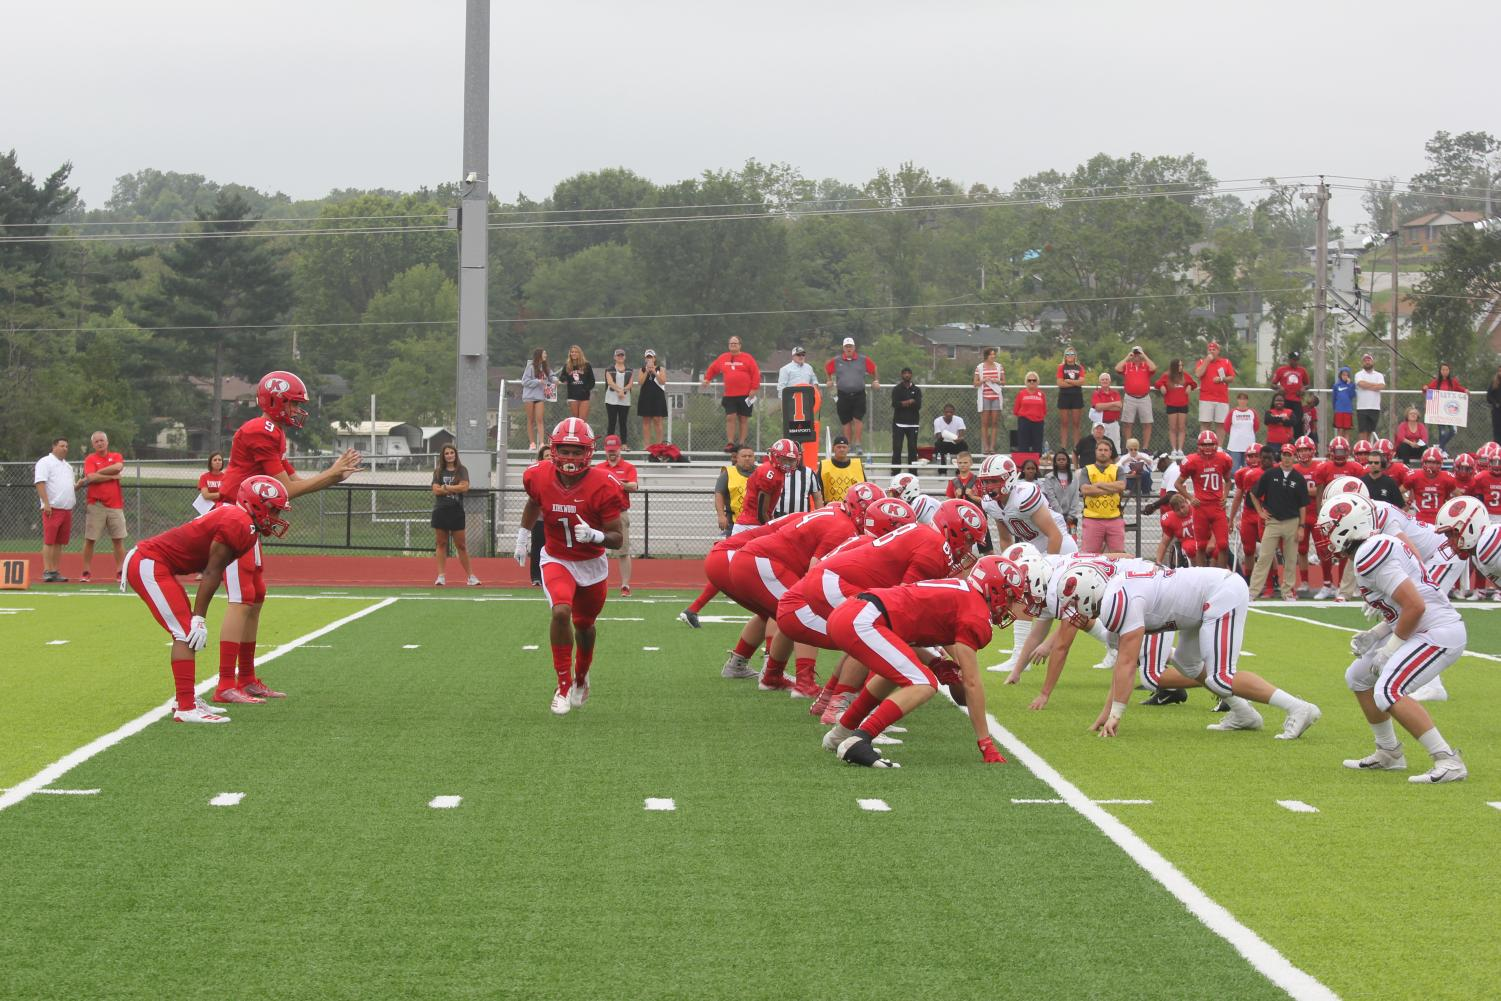 Junior+wide+receiver+Cole+Johnson+%281%29+cuts+across+the+field+in+motion+as+the+Pioneers+prepare+for+the+snap.